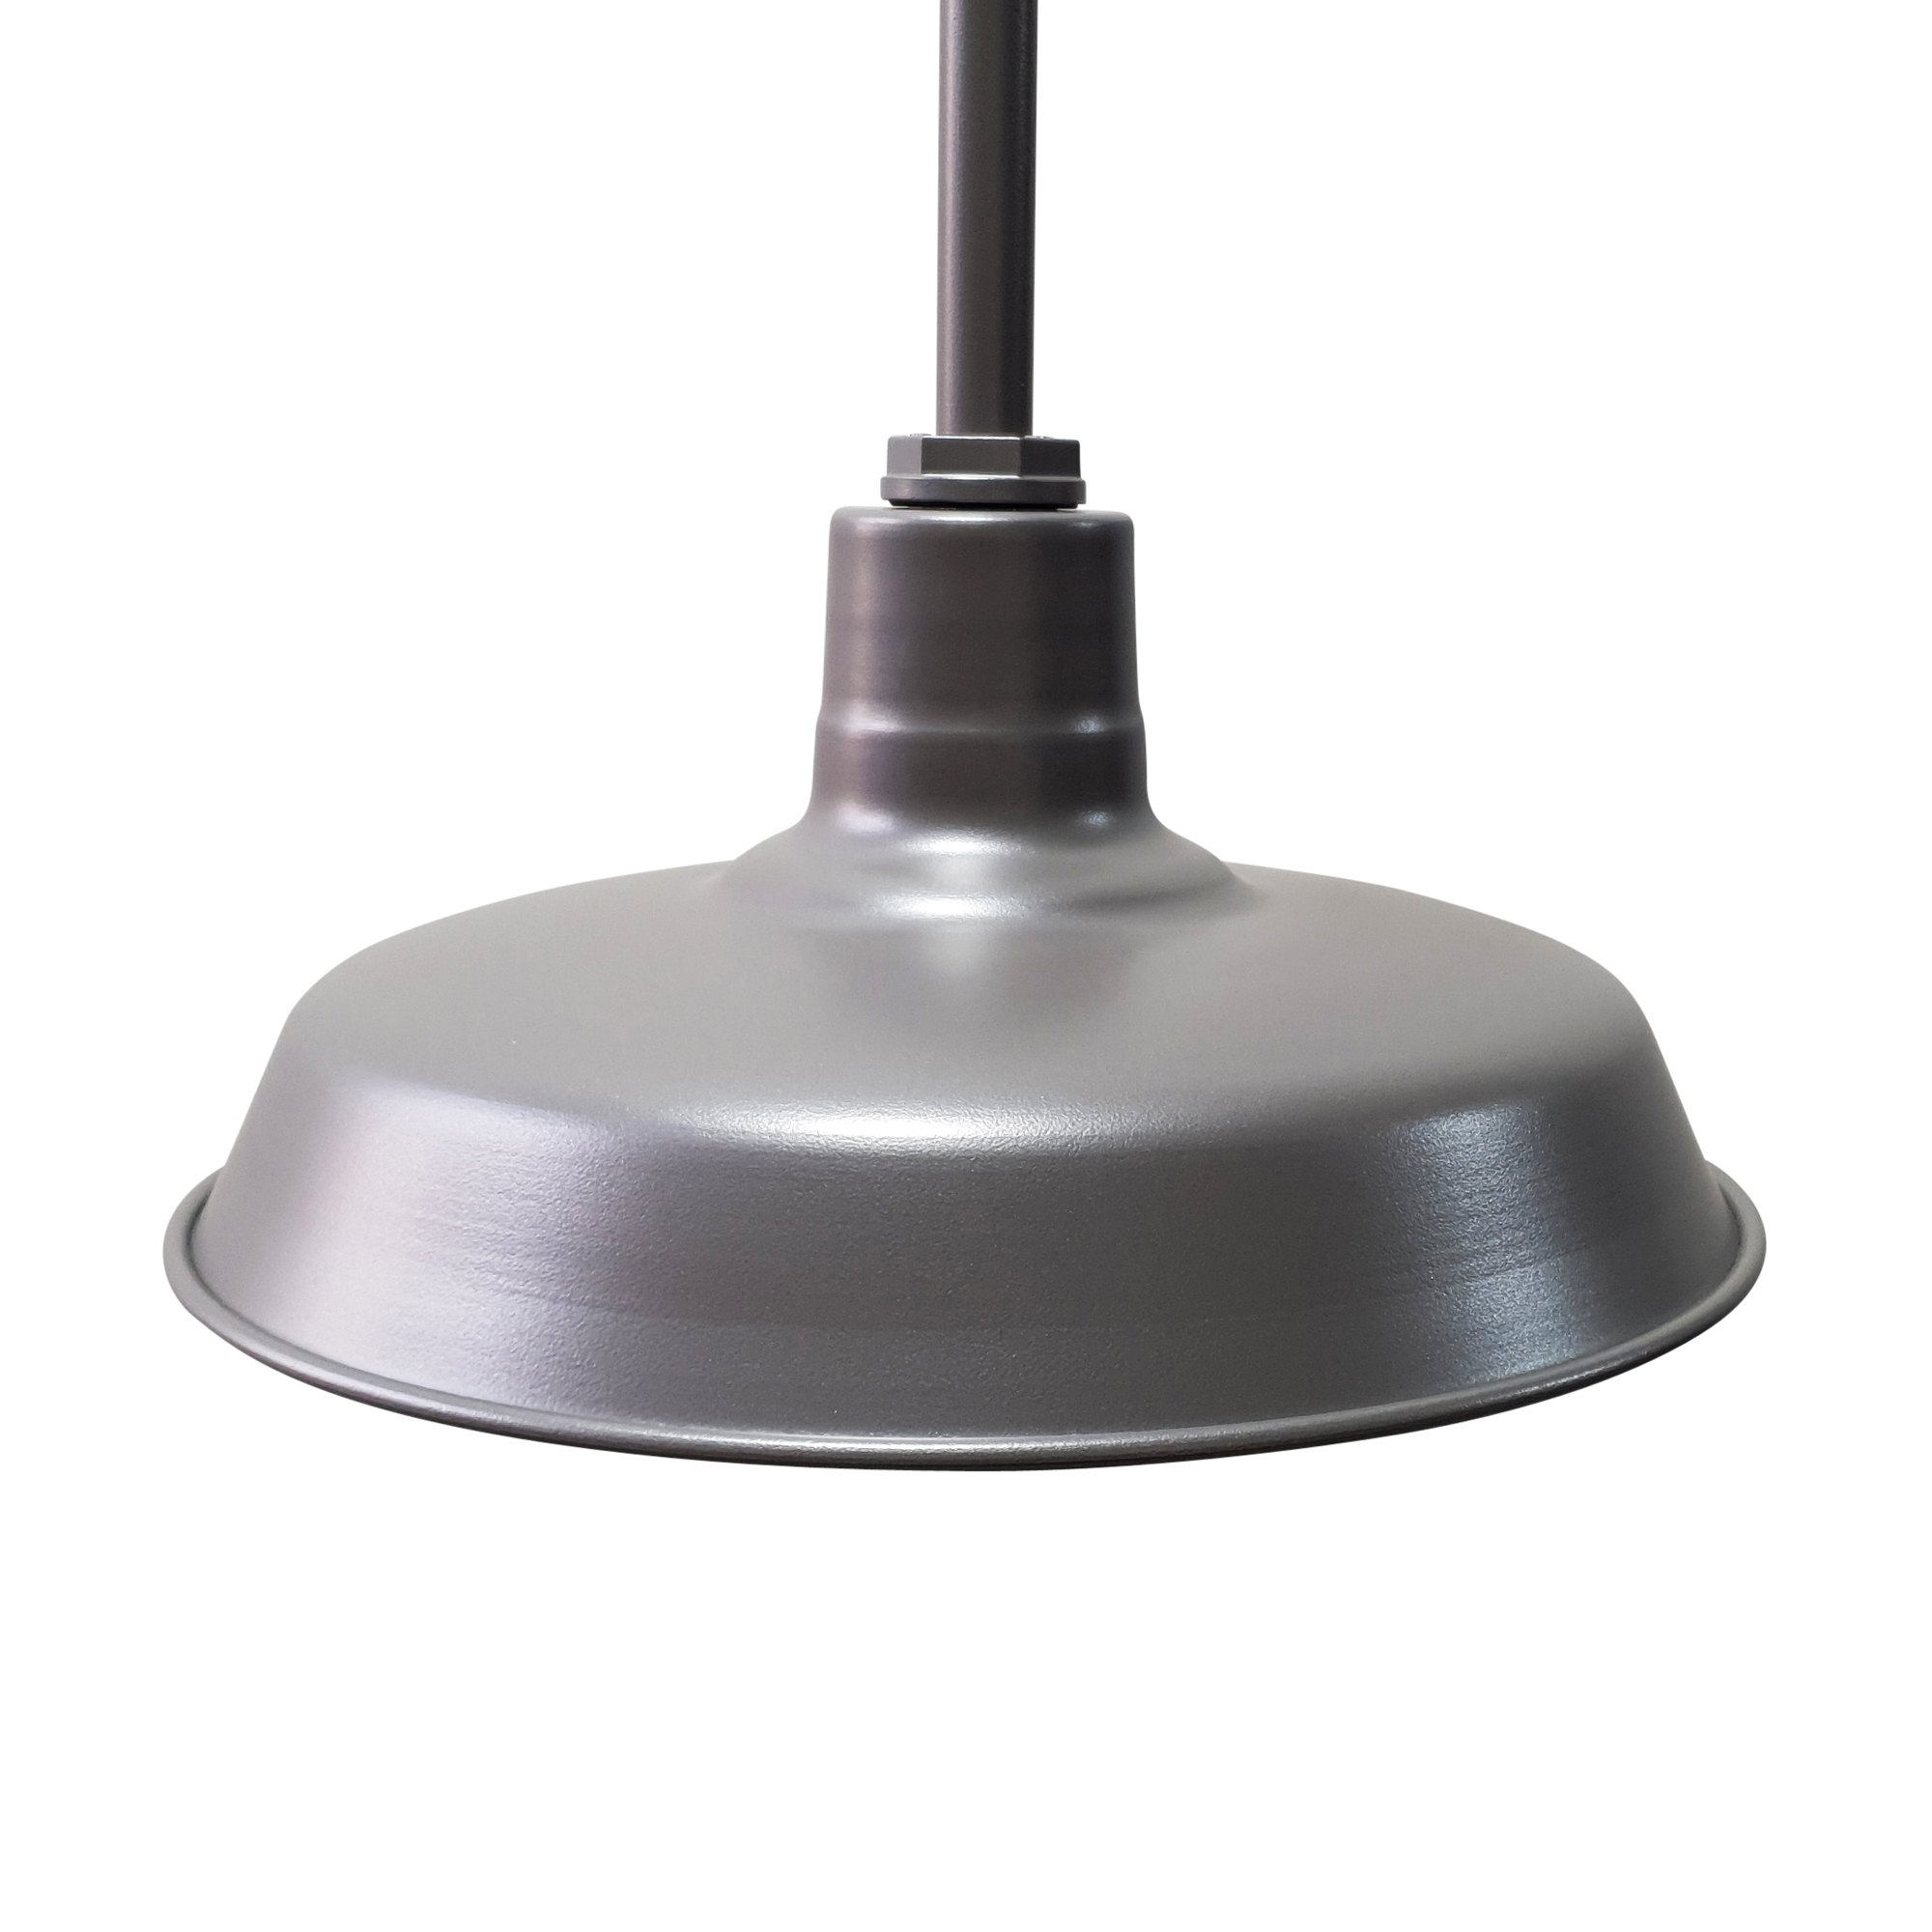 Silver Barn Light with Stem Mounted Assembly.